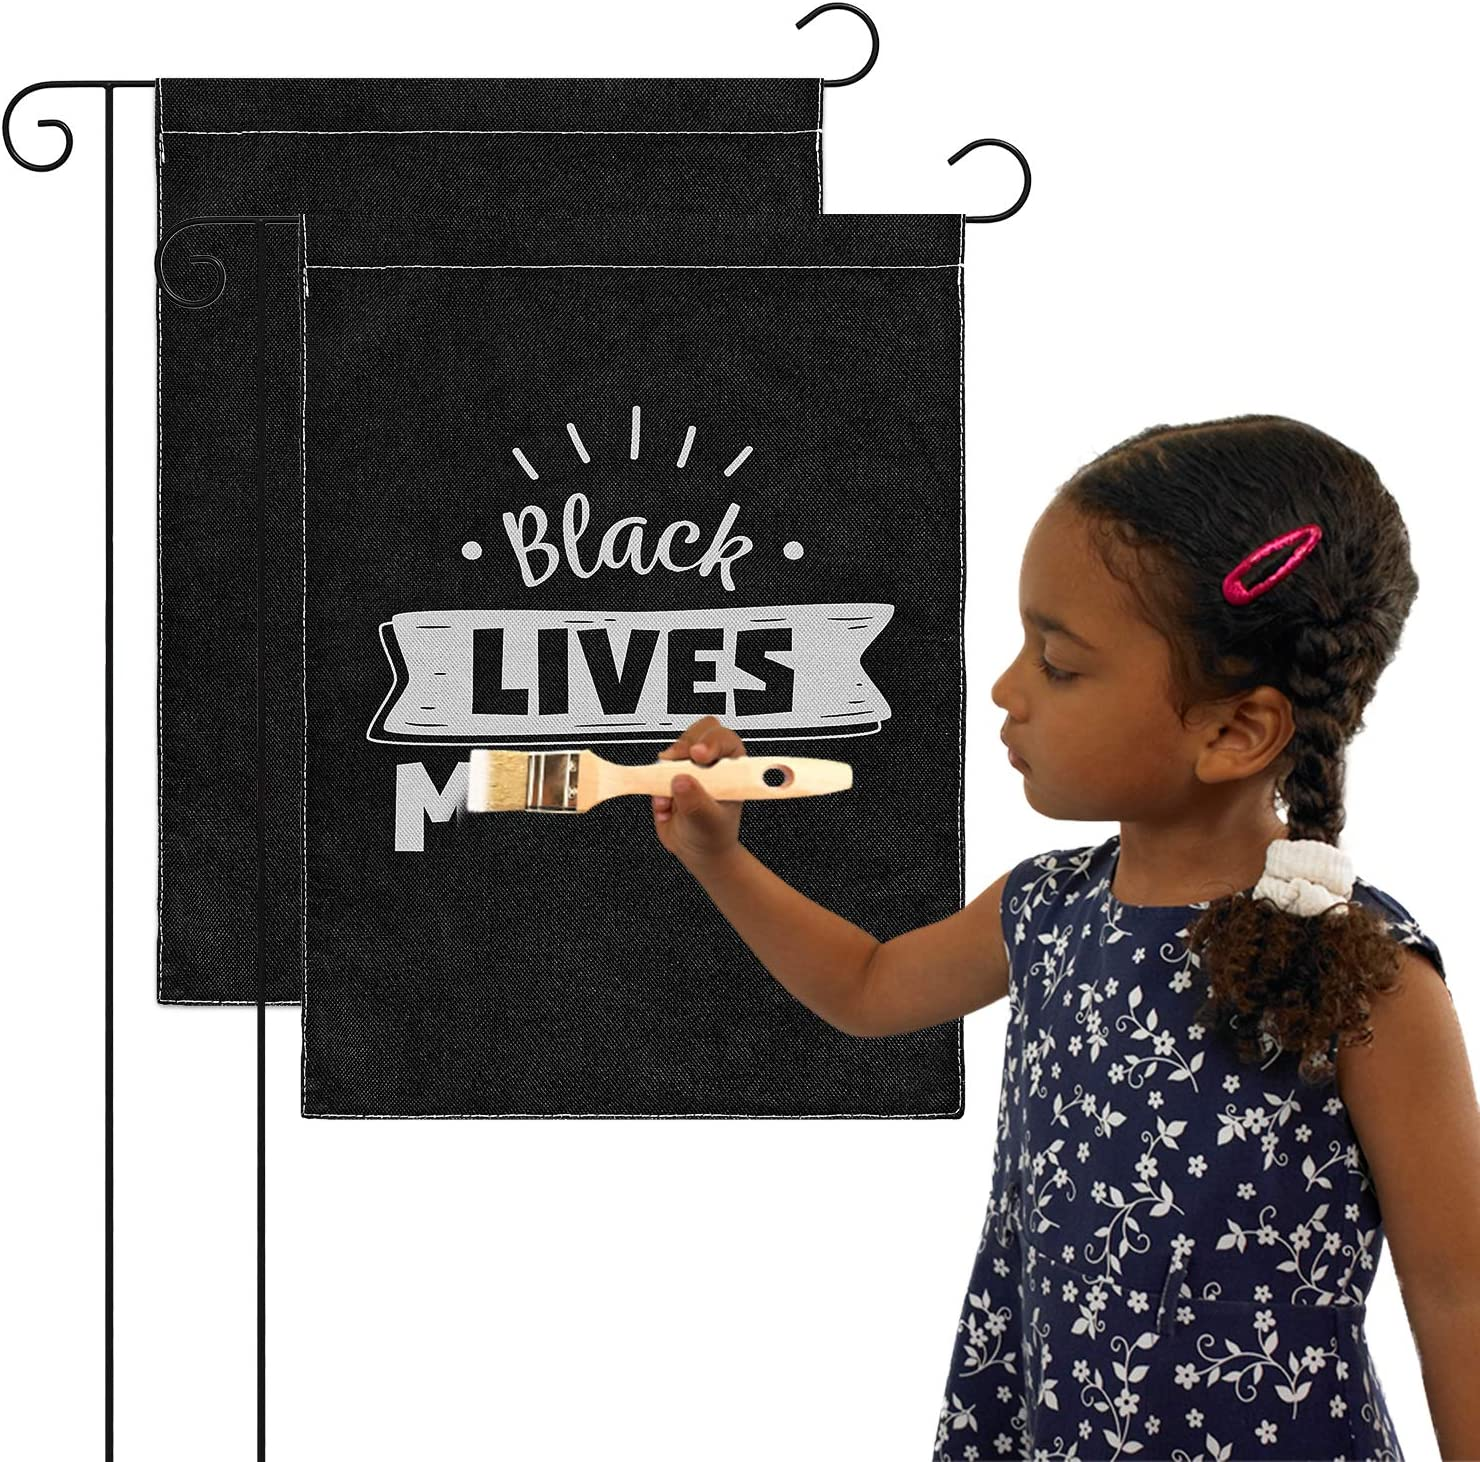 WATINC 2Pcs Blank Garden Flags Burlap DIY Personalized House Flag Double Sided Black Yard Decorations Welcome Seasonal Lawn Sign for Peace Protest Procession Party Indoor Outdoor 12.6 x 18.1 Inch